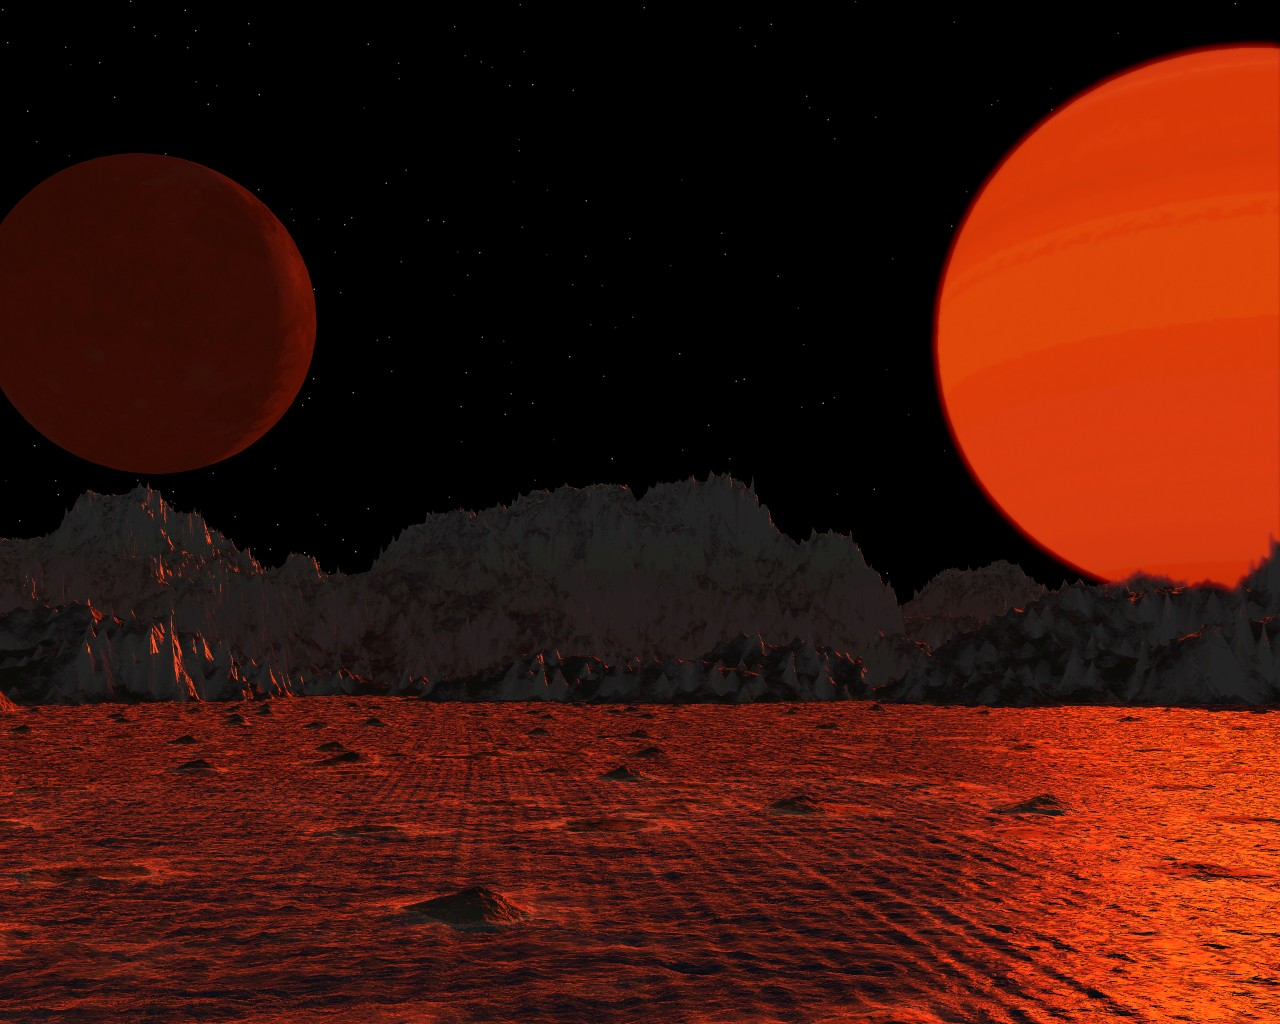 Giant Red Moon (page 3) - Pics about space